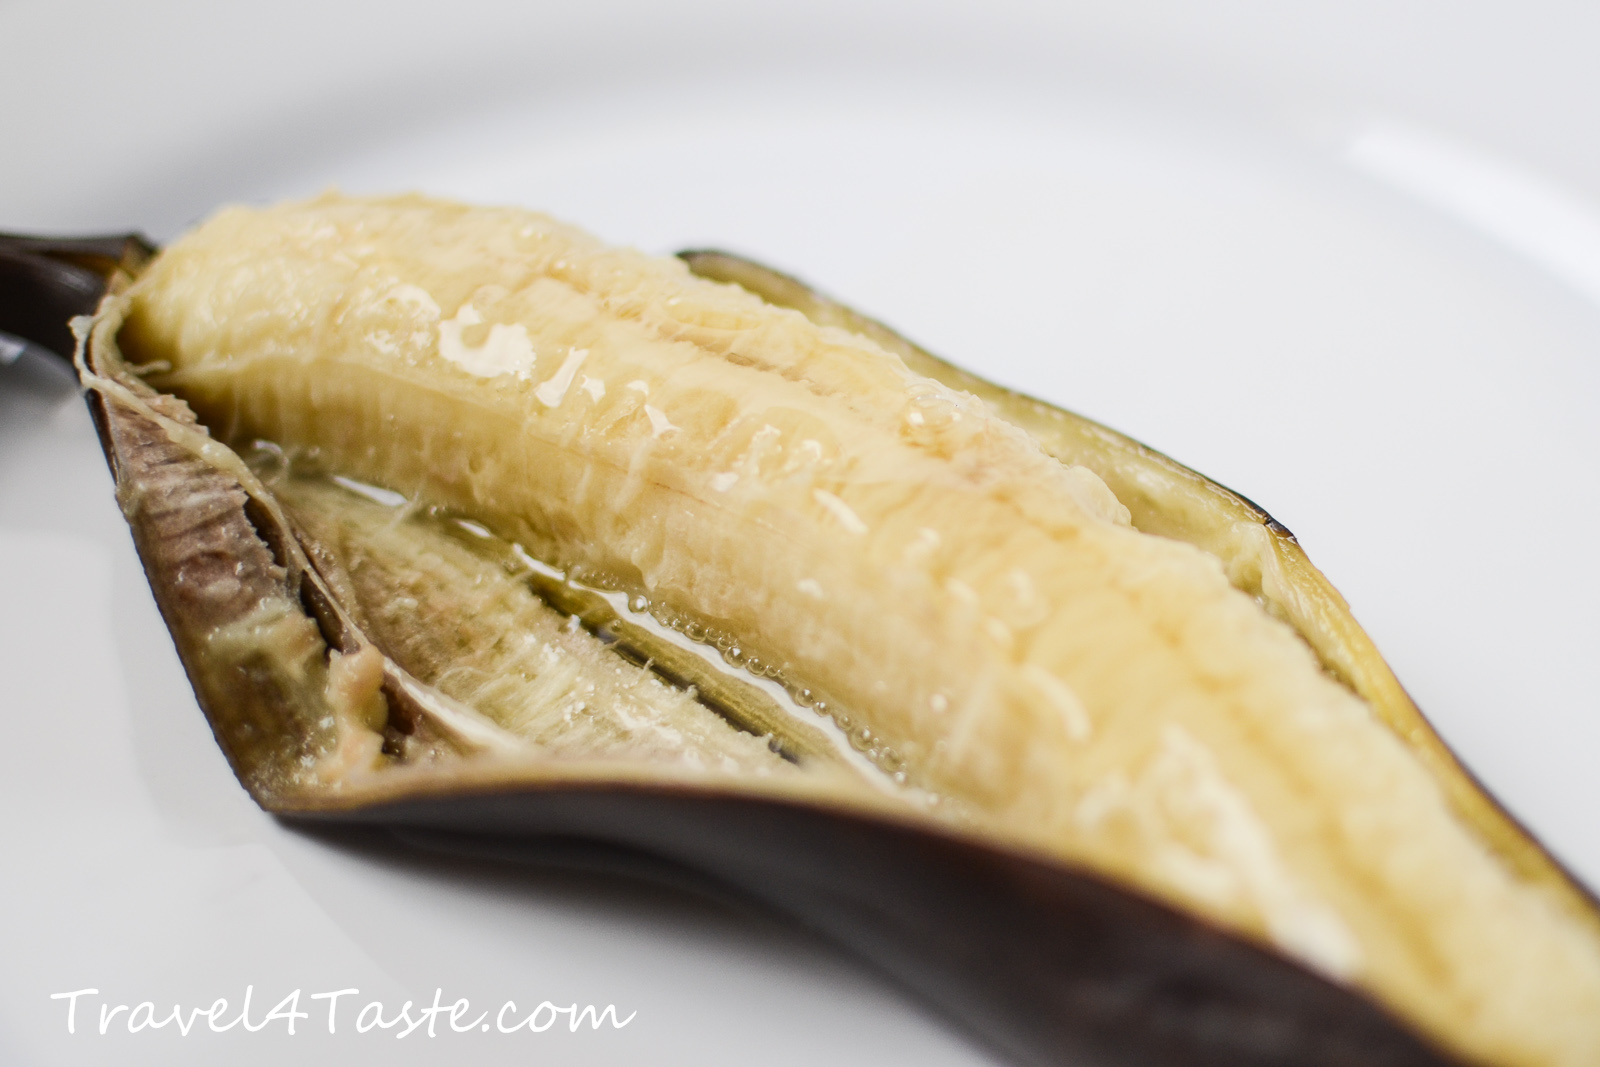 Baked Bananas with Walnuts, Agave Syrup & Mint | Travel For Taste